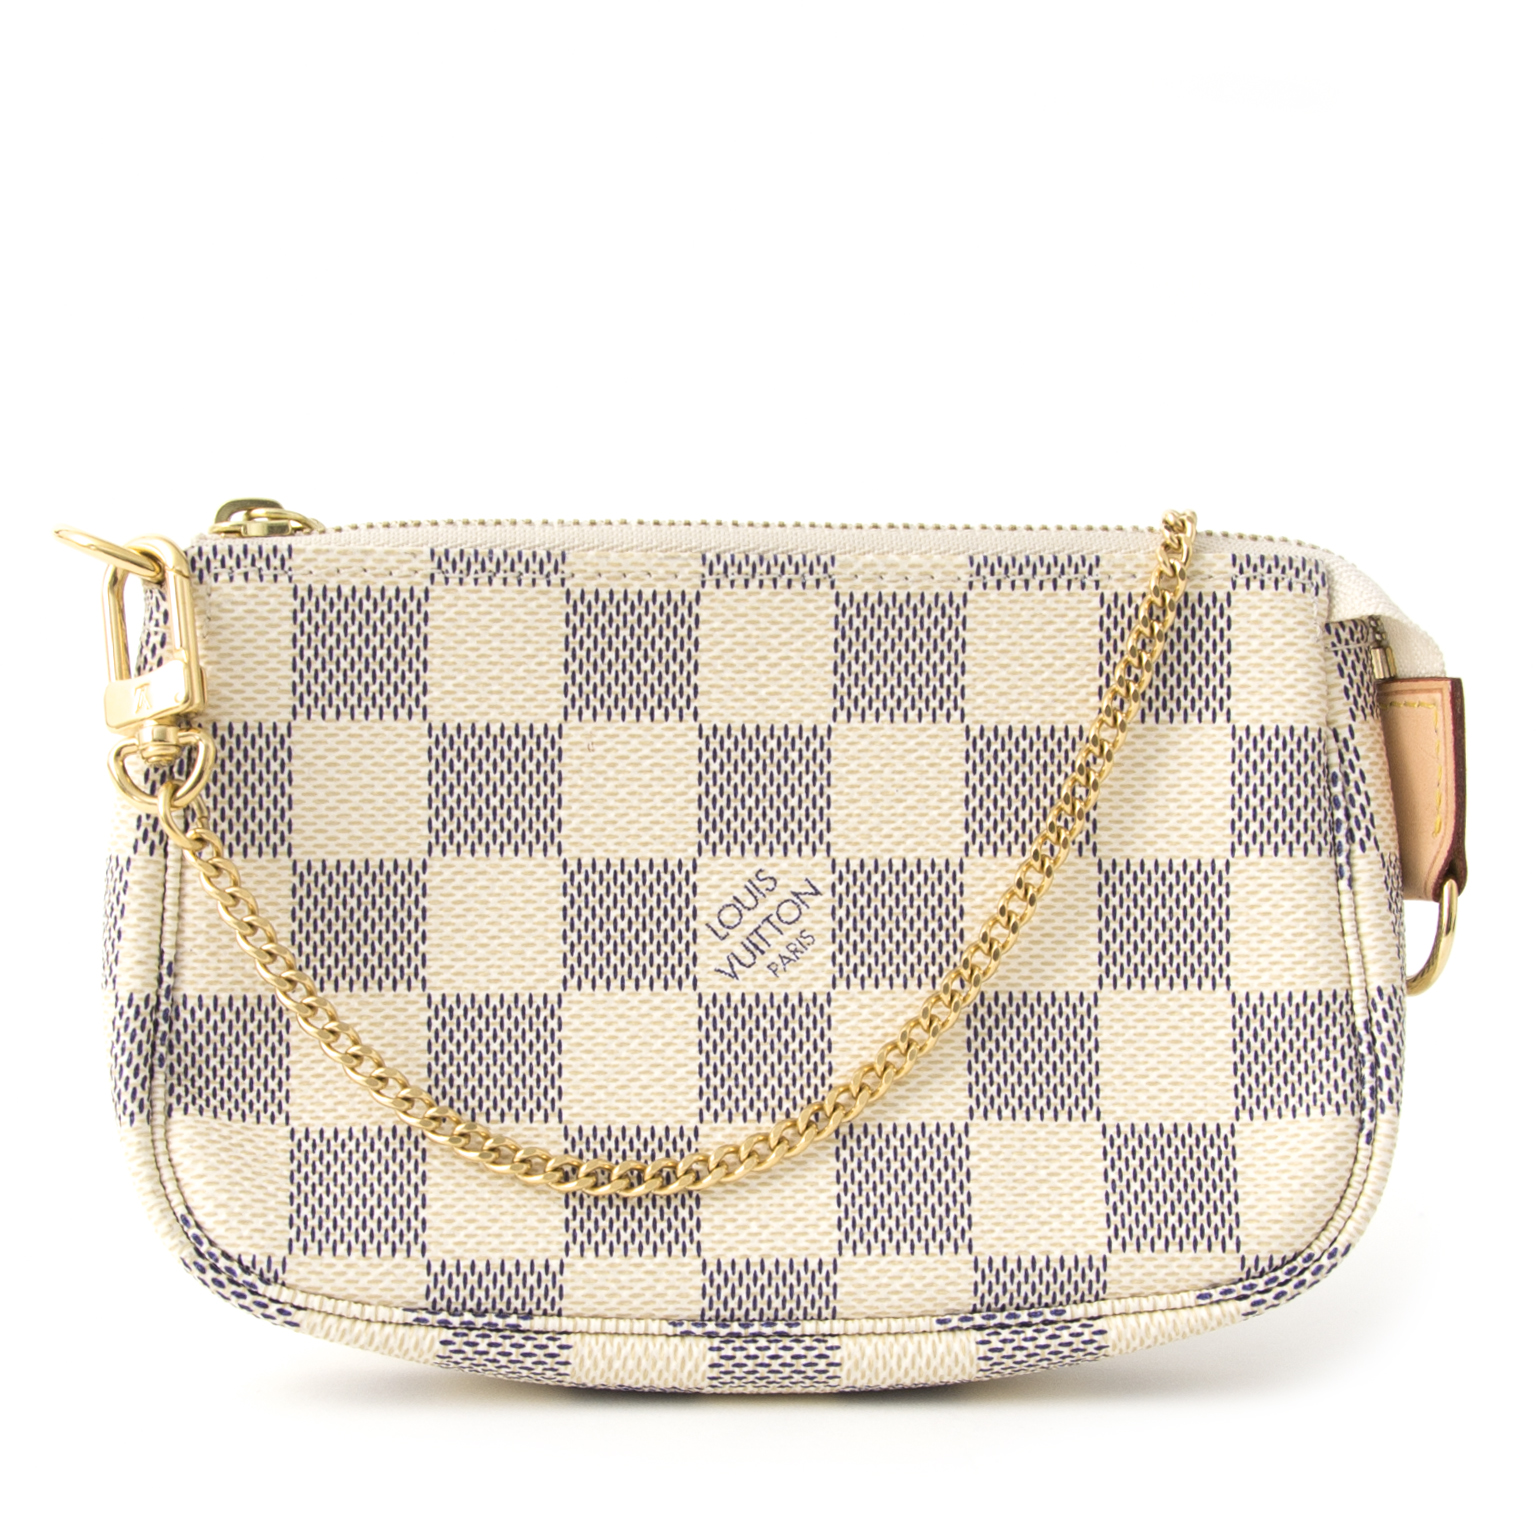 aae0dbc896b8 shop safe online at the best price like new Louis Vuitton Mini Pochette  Damier Azur like acheter en ligne seconde main Louis Vuitton Mini Pochette  Damier ...